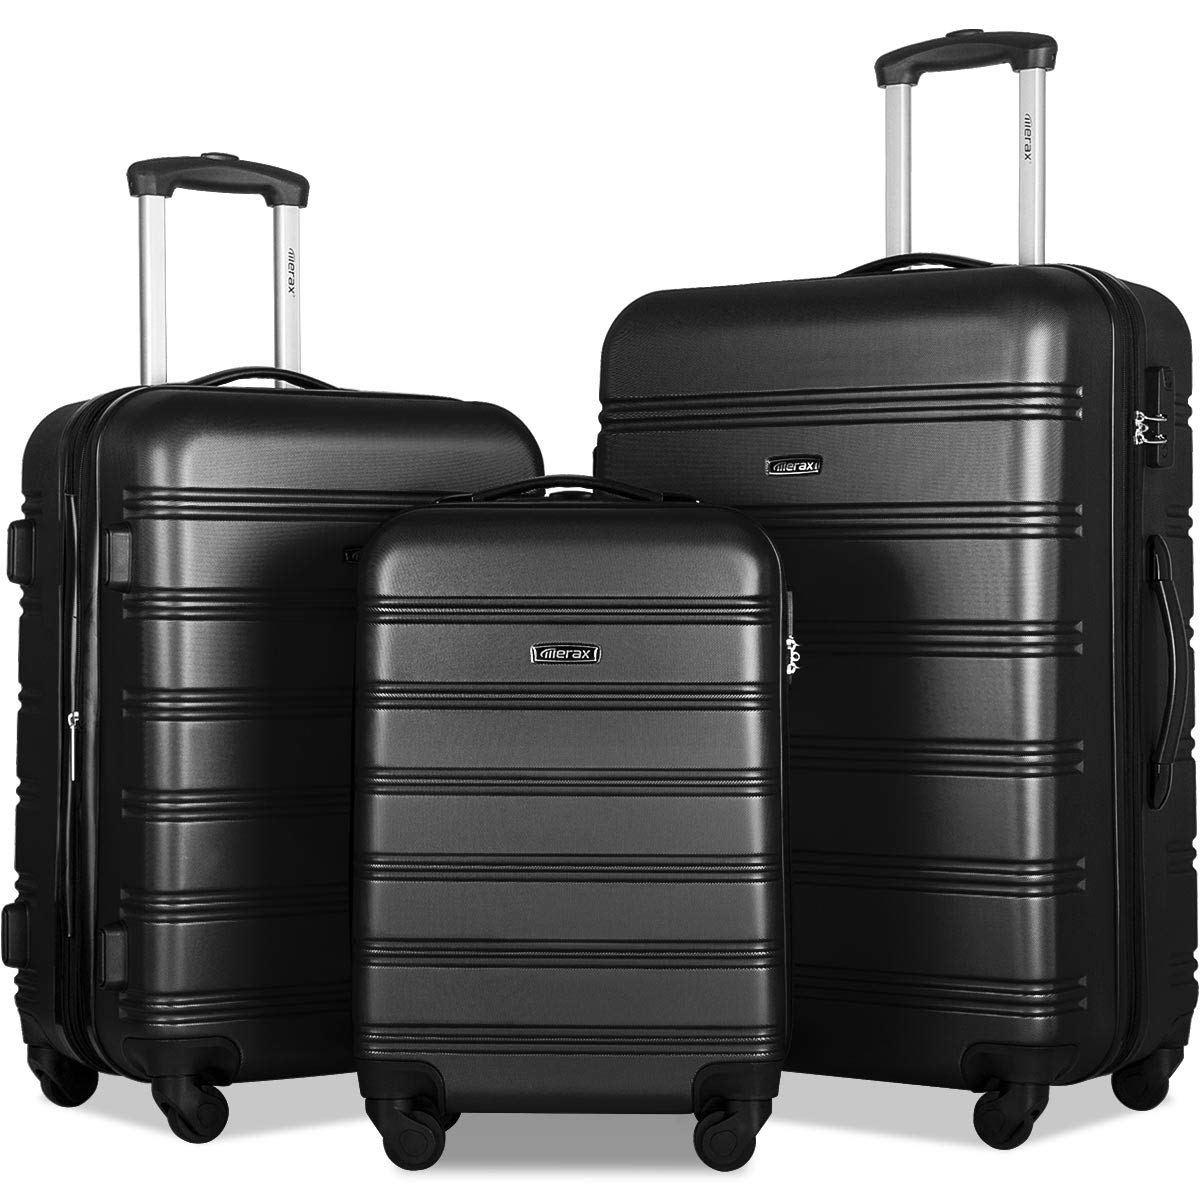 Merax 3 Pcs Luggage Set Expandable Hardside Lightweight Spinner Suitcase with TSA Lock [Upgraded Version] by Merax